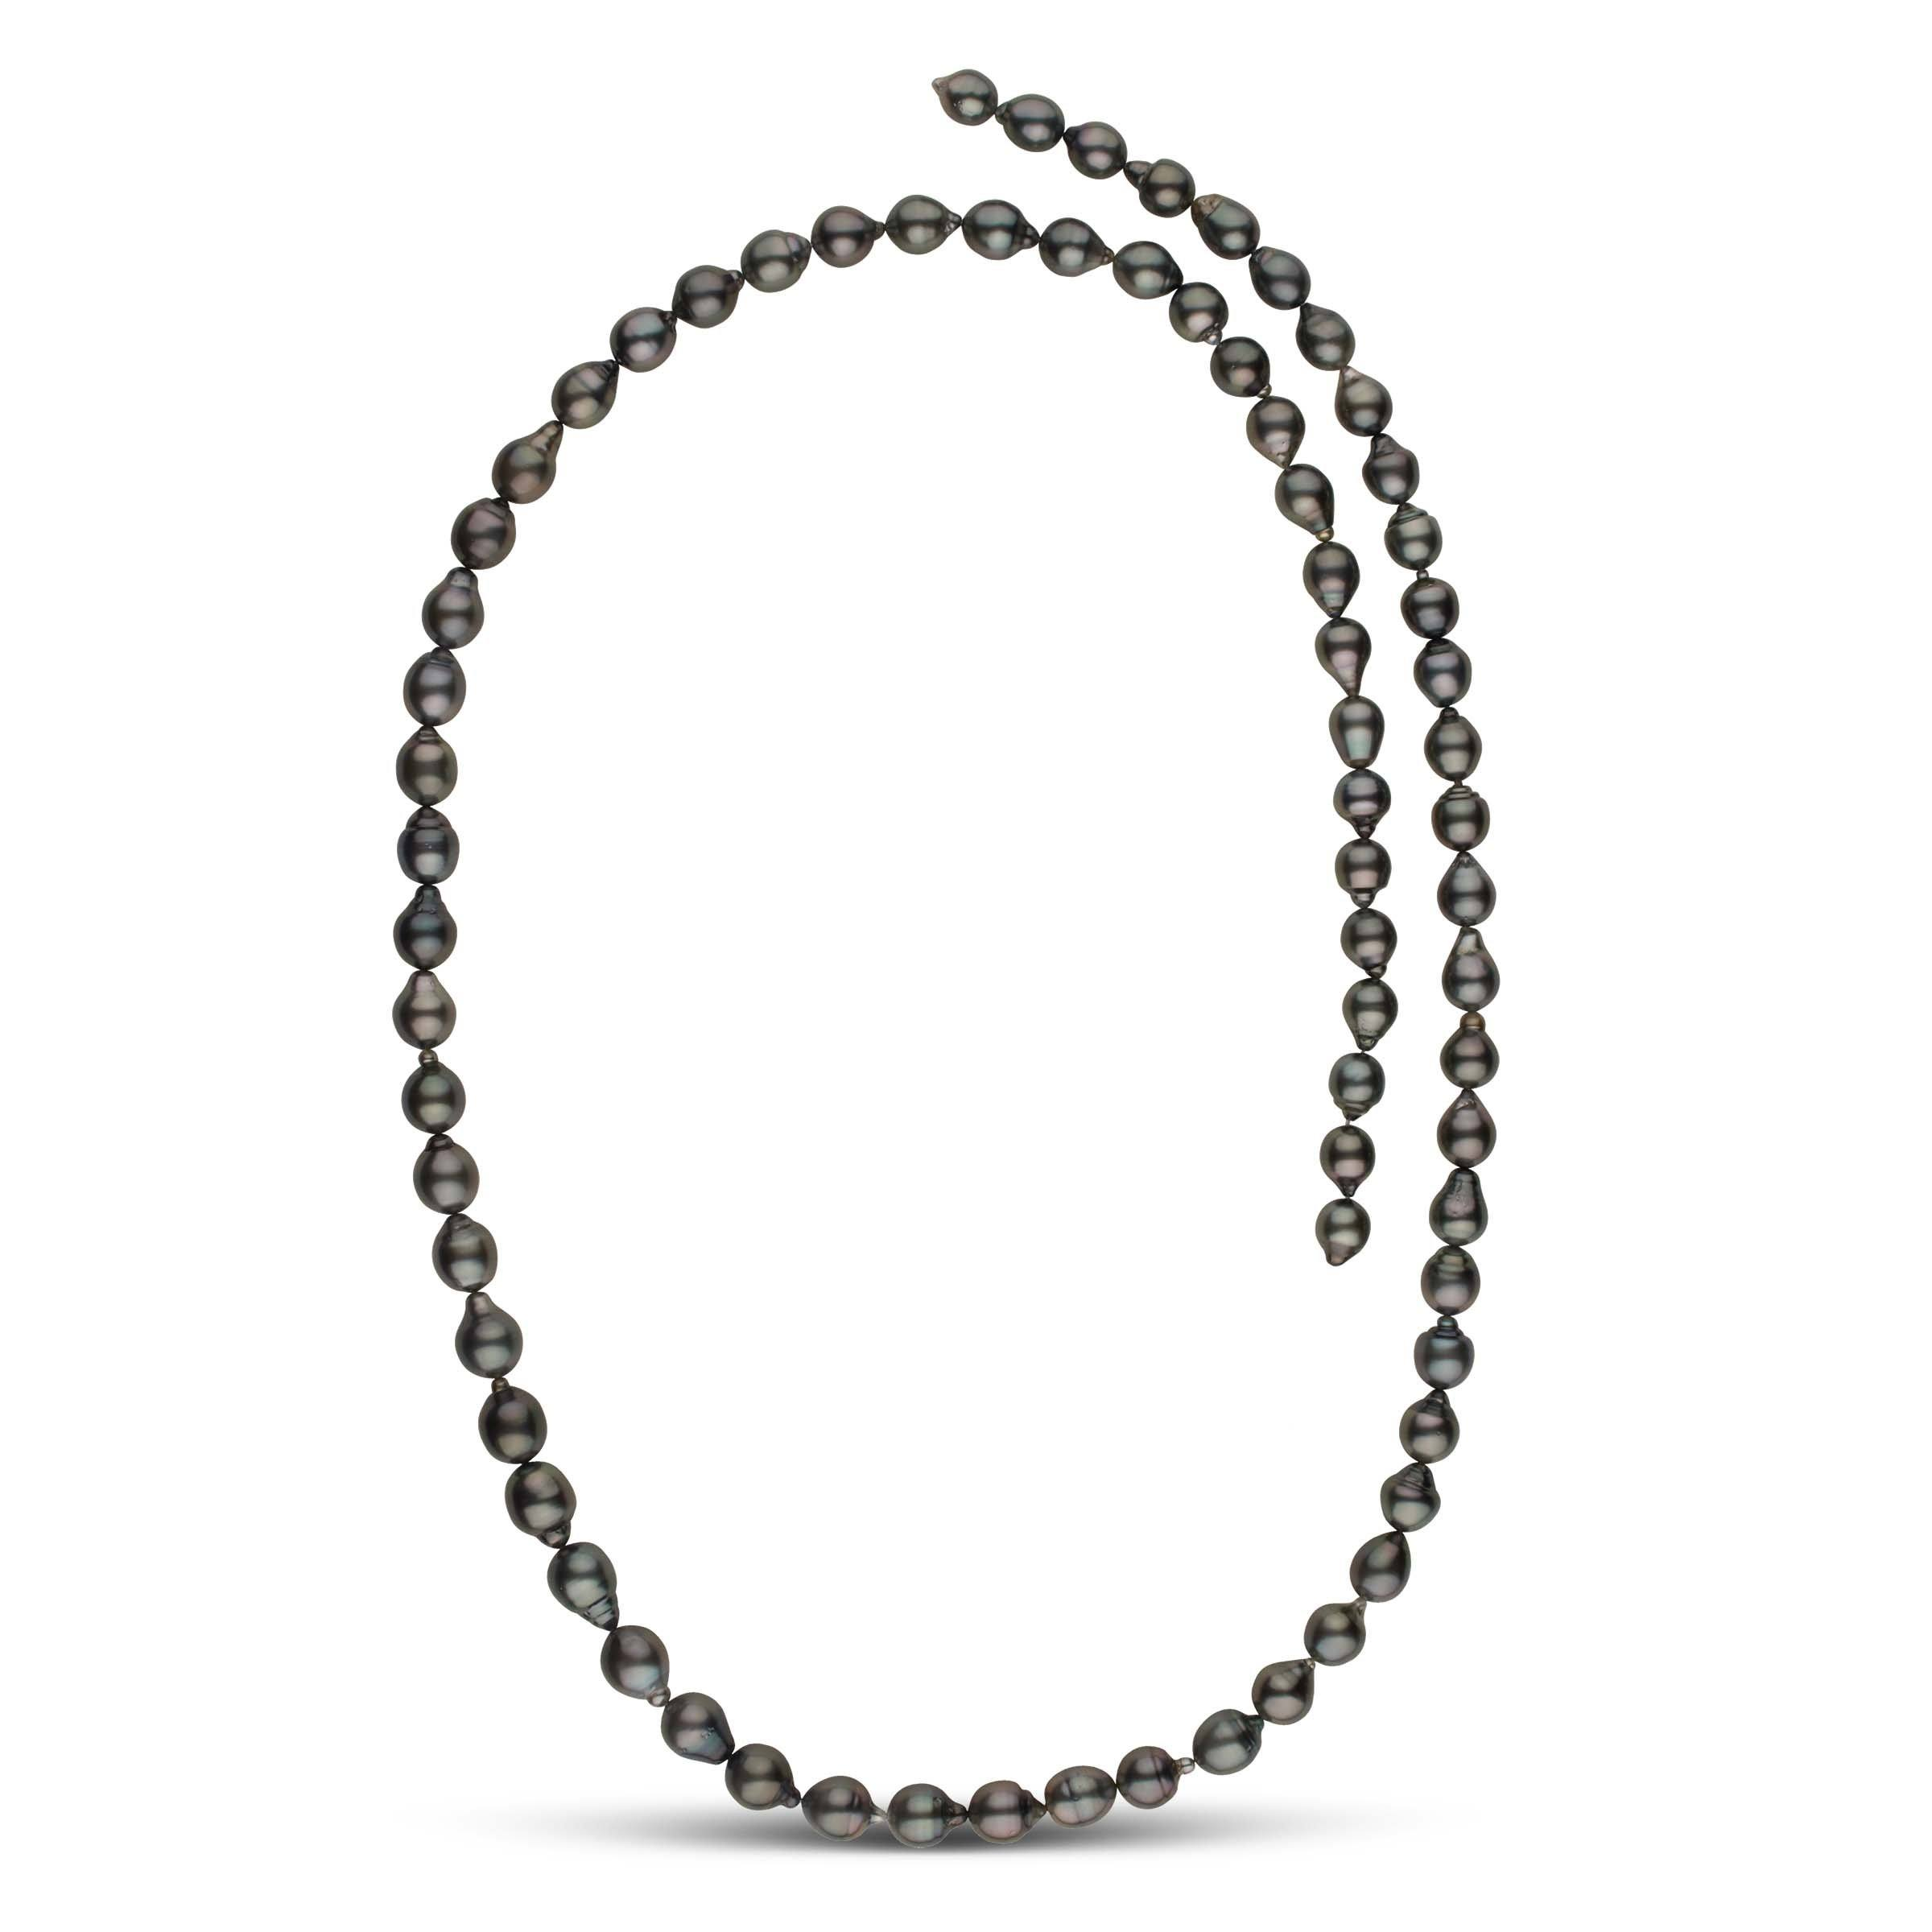 36-inch 8.6-10.9 mm AA+/AAA Drop Tahitian Pearl Necklace